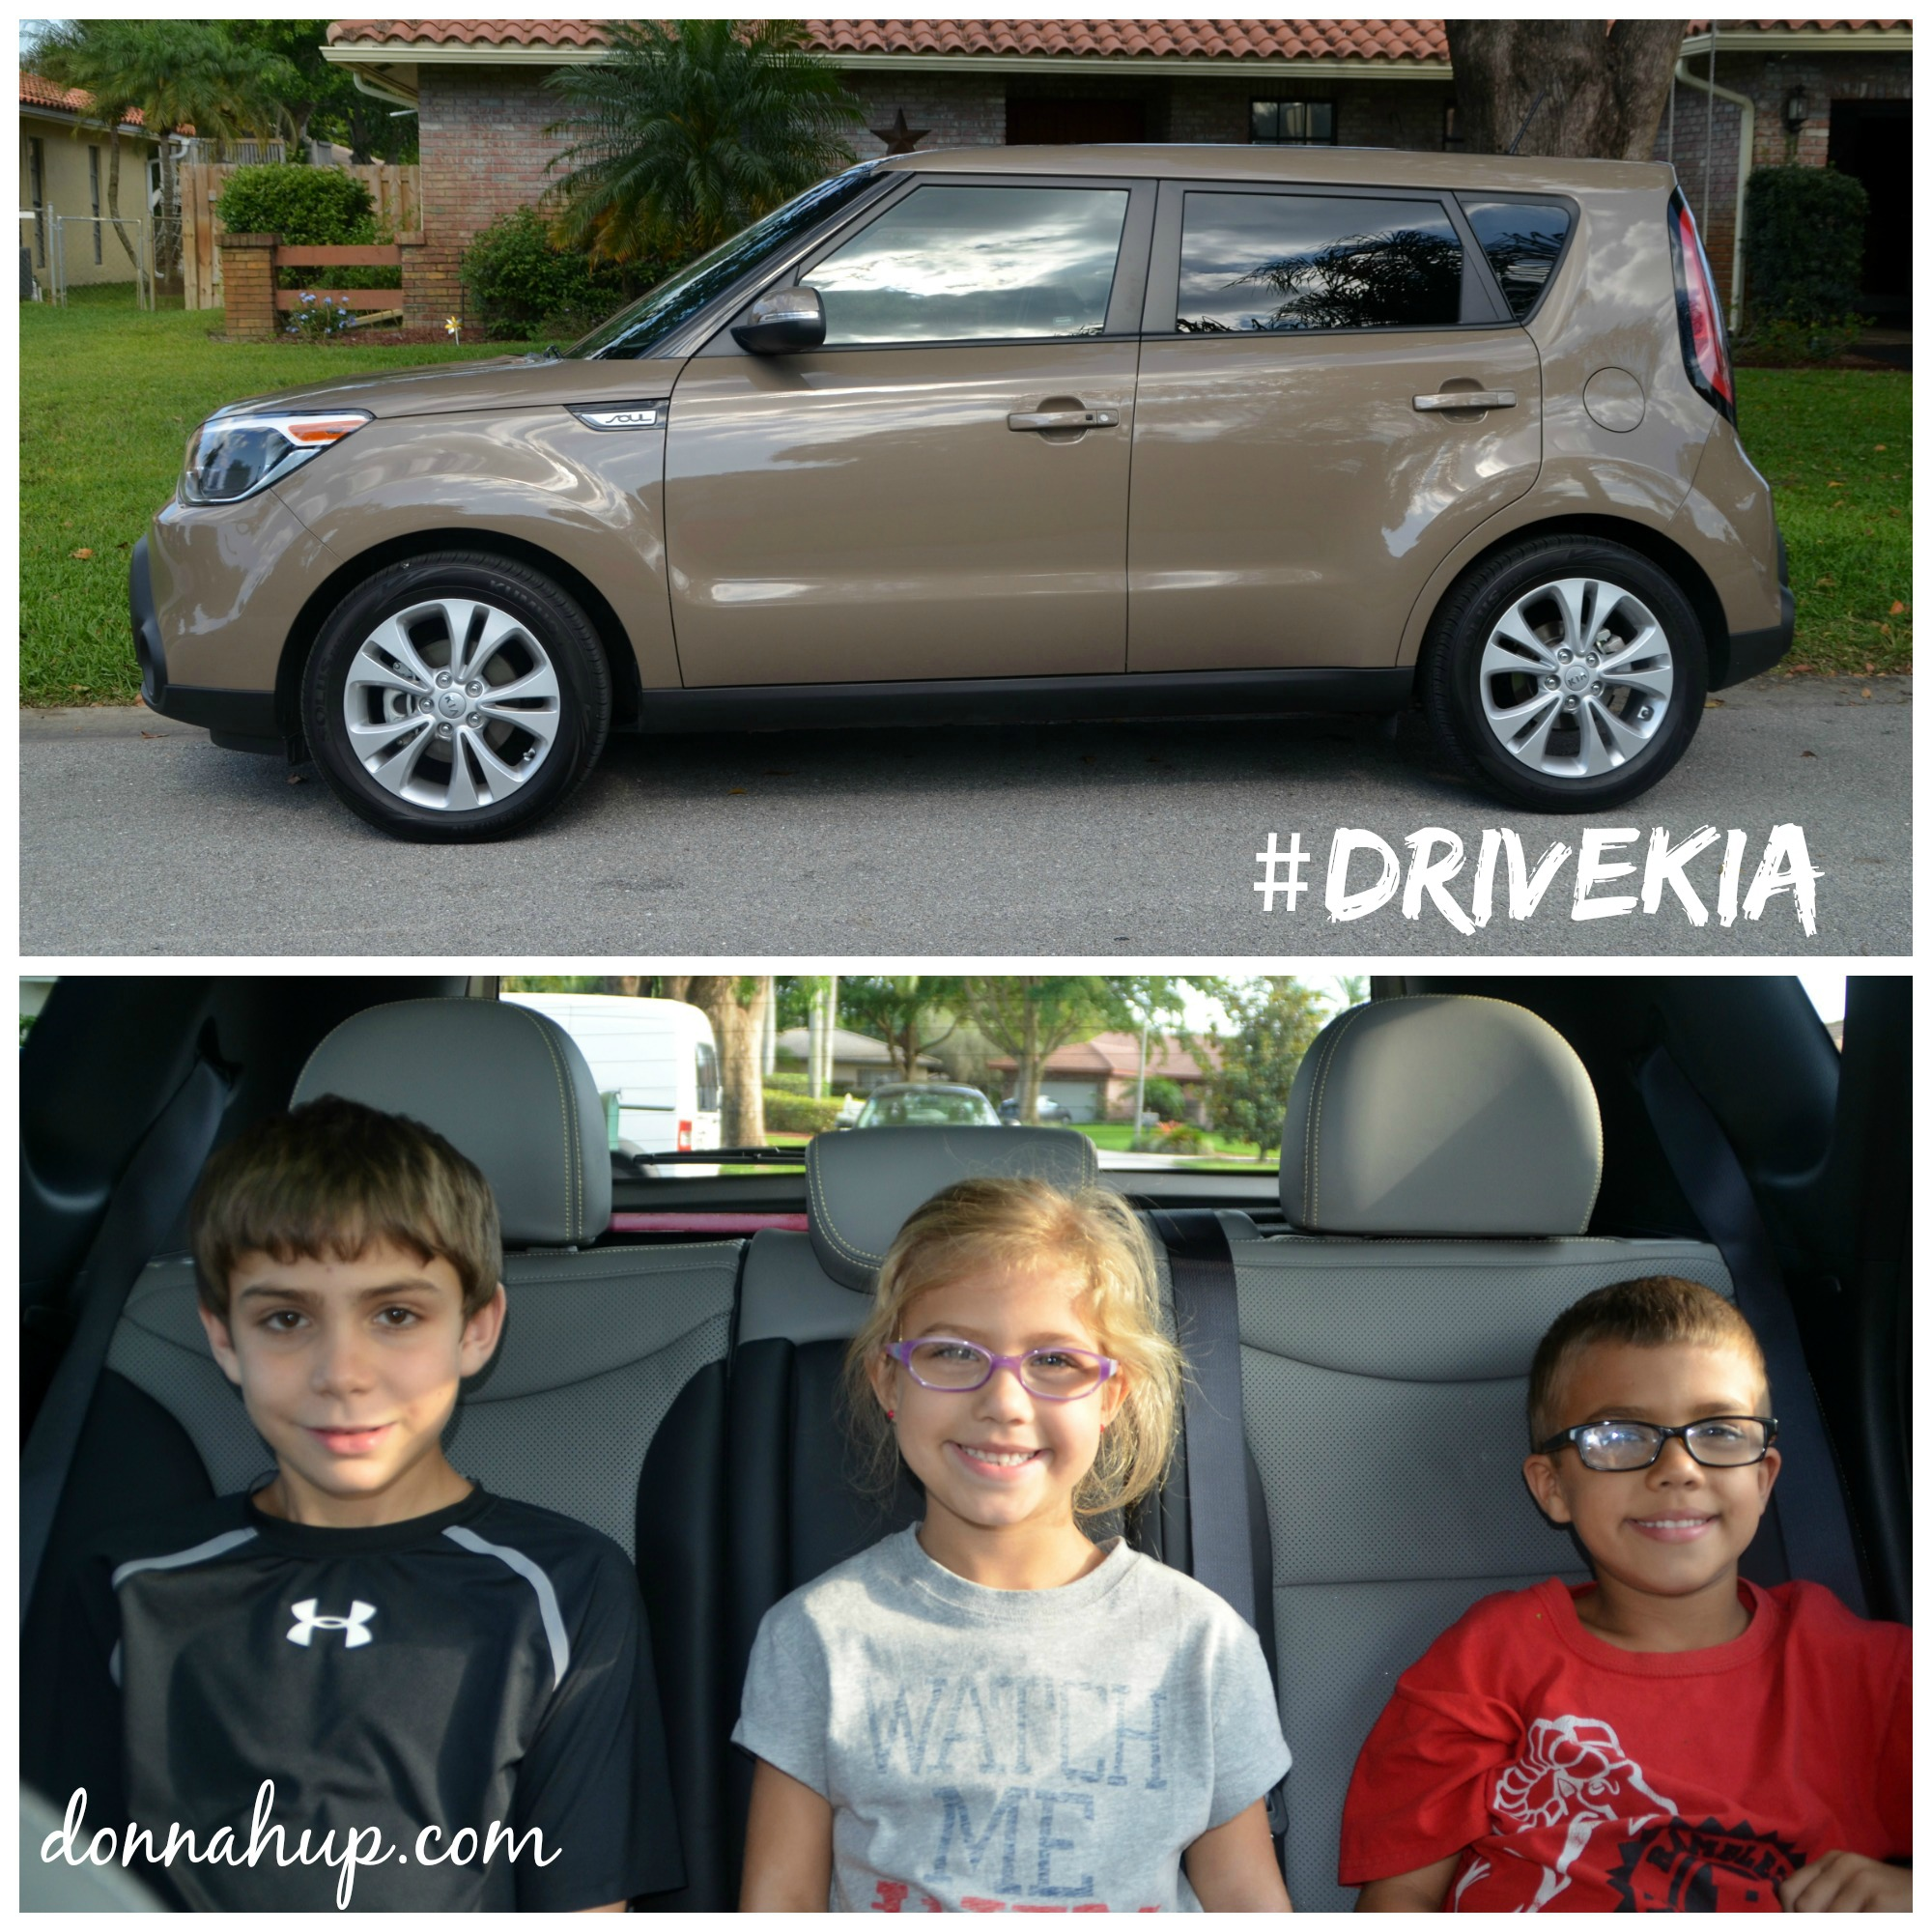 2014 Kia Soul – It's great for traveling!